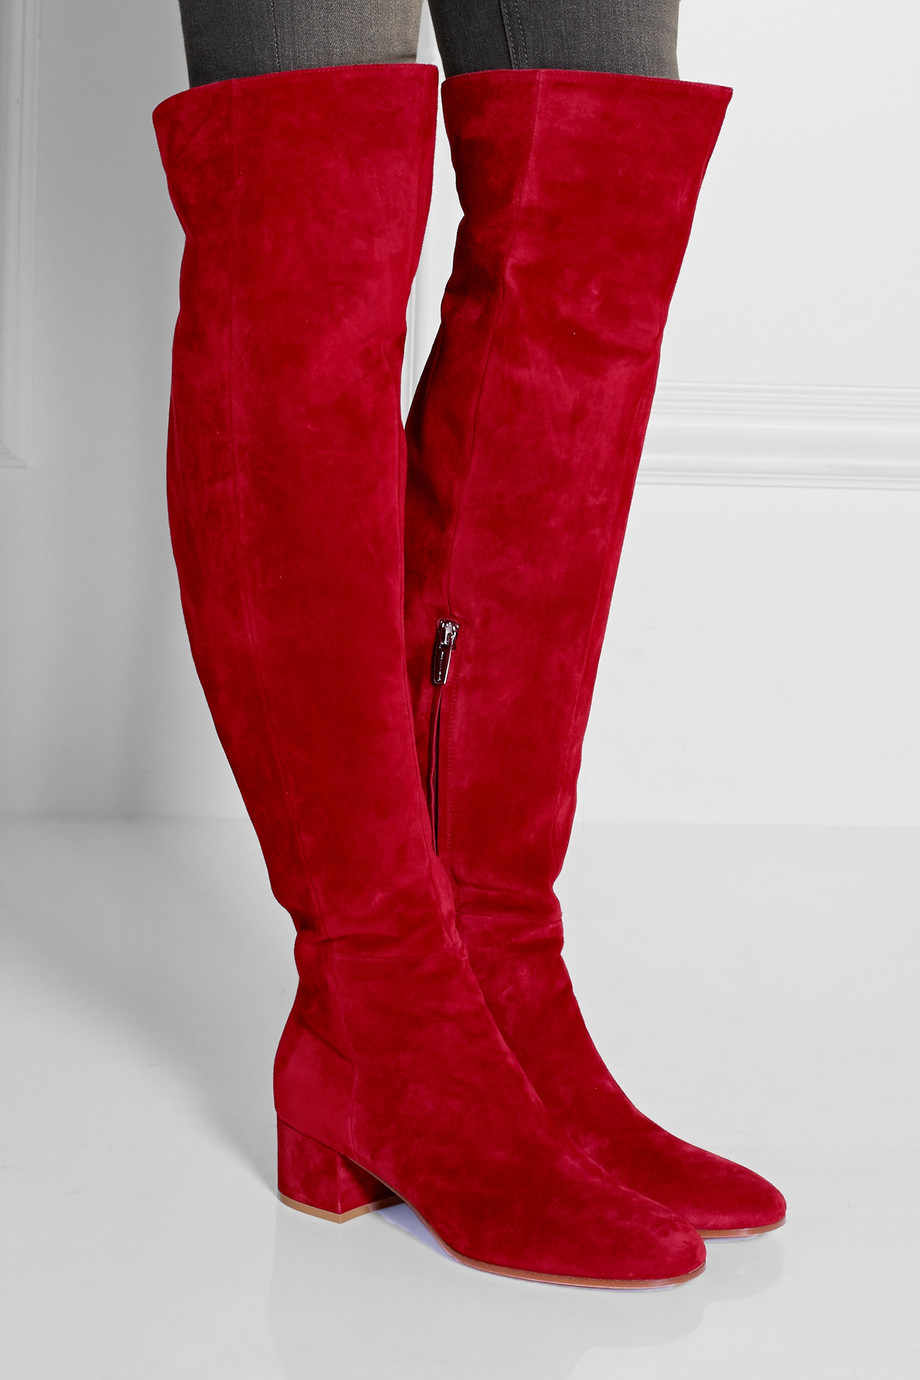 725cff12722 Real Pic Winter Red Suede Round Toe Over The Knee Boots Thick Heels ...